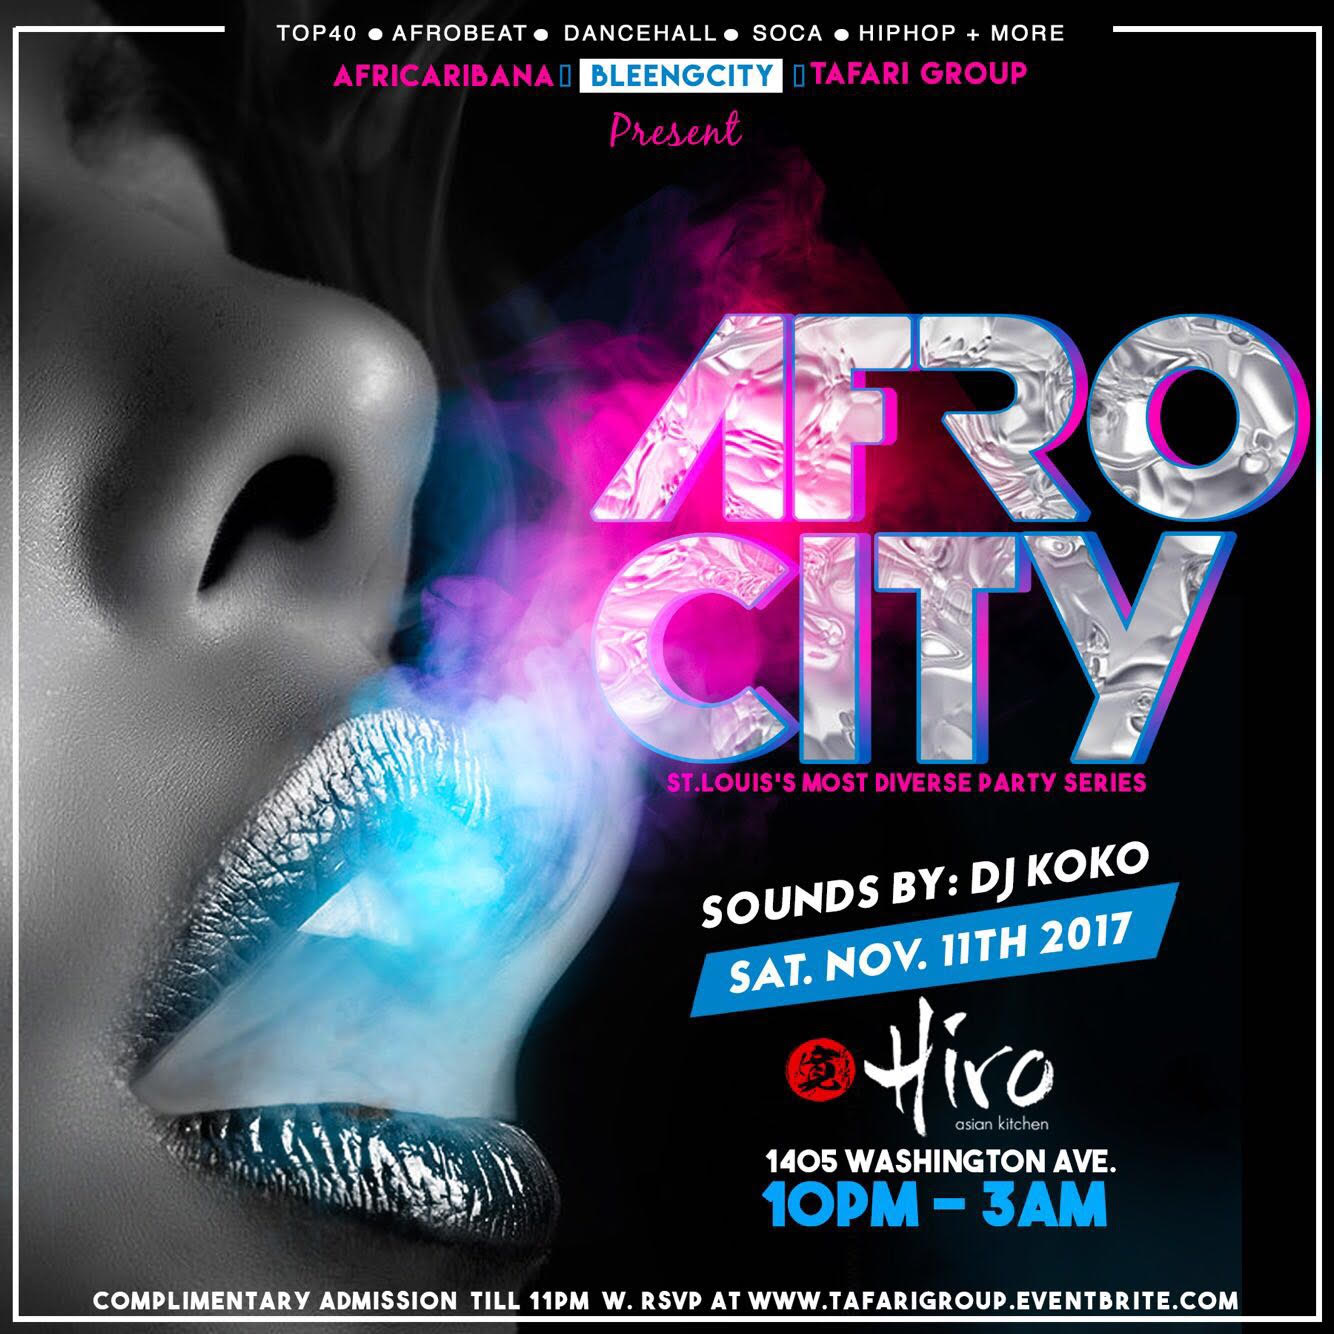 AFRO CITY: St. Louis's Most Diverse Party Series Tickets